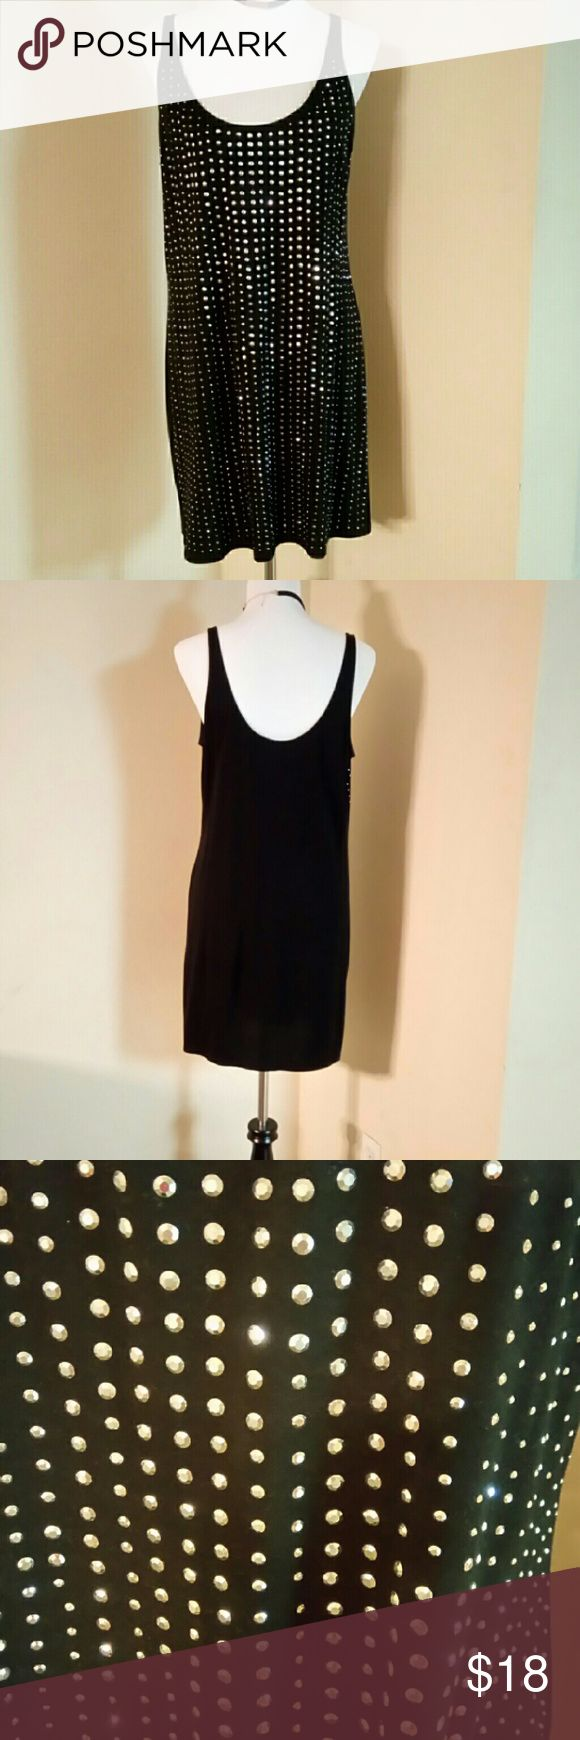 Express studded dress Very comfortable dress either dress it up as casual or night out. All studs in the front. 27 inches from armpit down, 20 inches waist. 60% cotton, 40% modal. Worn twice. Express Dresses Midi